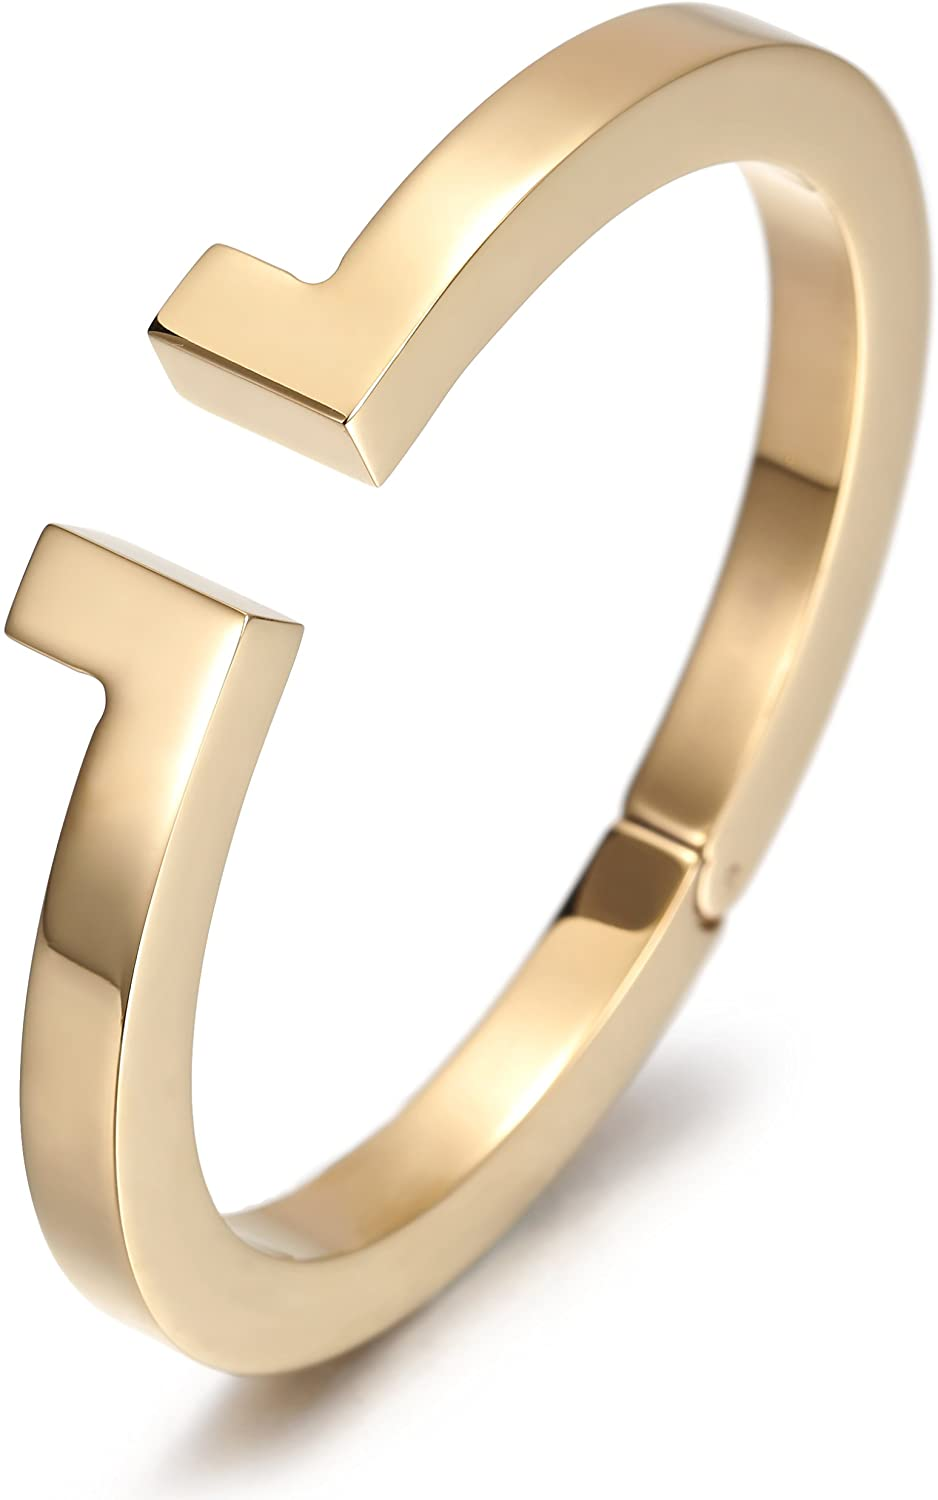 JINBAOYING Gold Plated Women Bracelet Cuff Bangle Bracelet with Stainless Steel and Spring-Clasp Cuff Bangle Bracelet Jewelry Gift for Women Girls